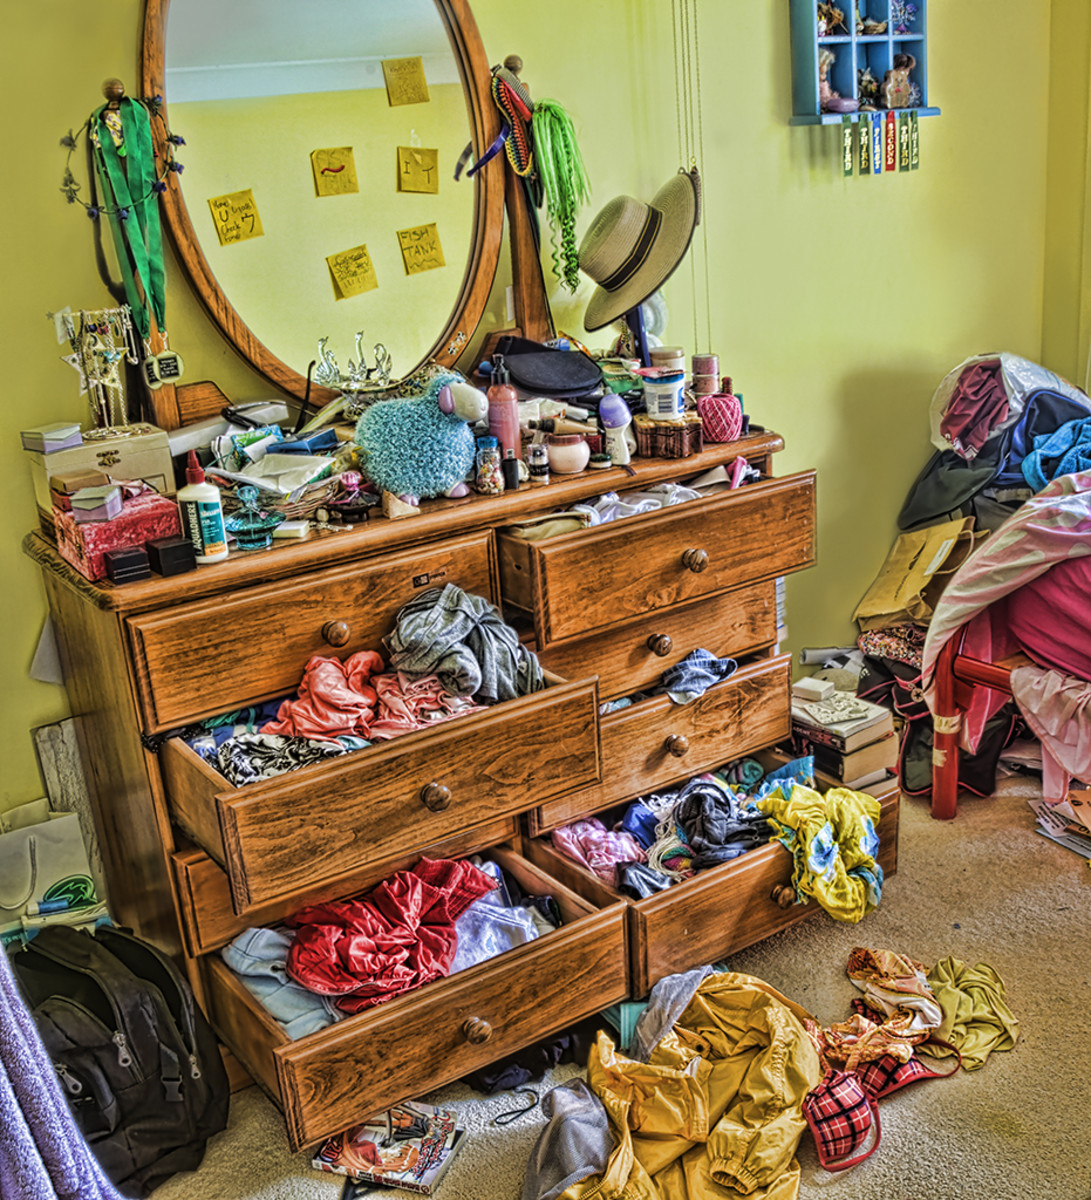 how to clean a messy room quickly dengarden